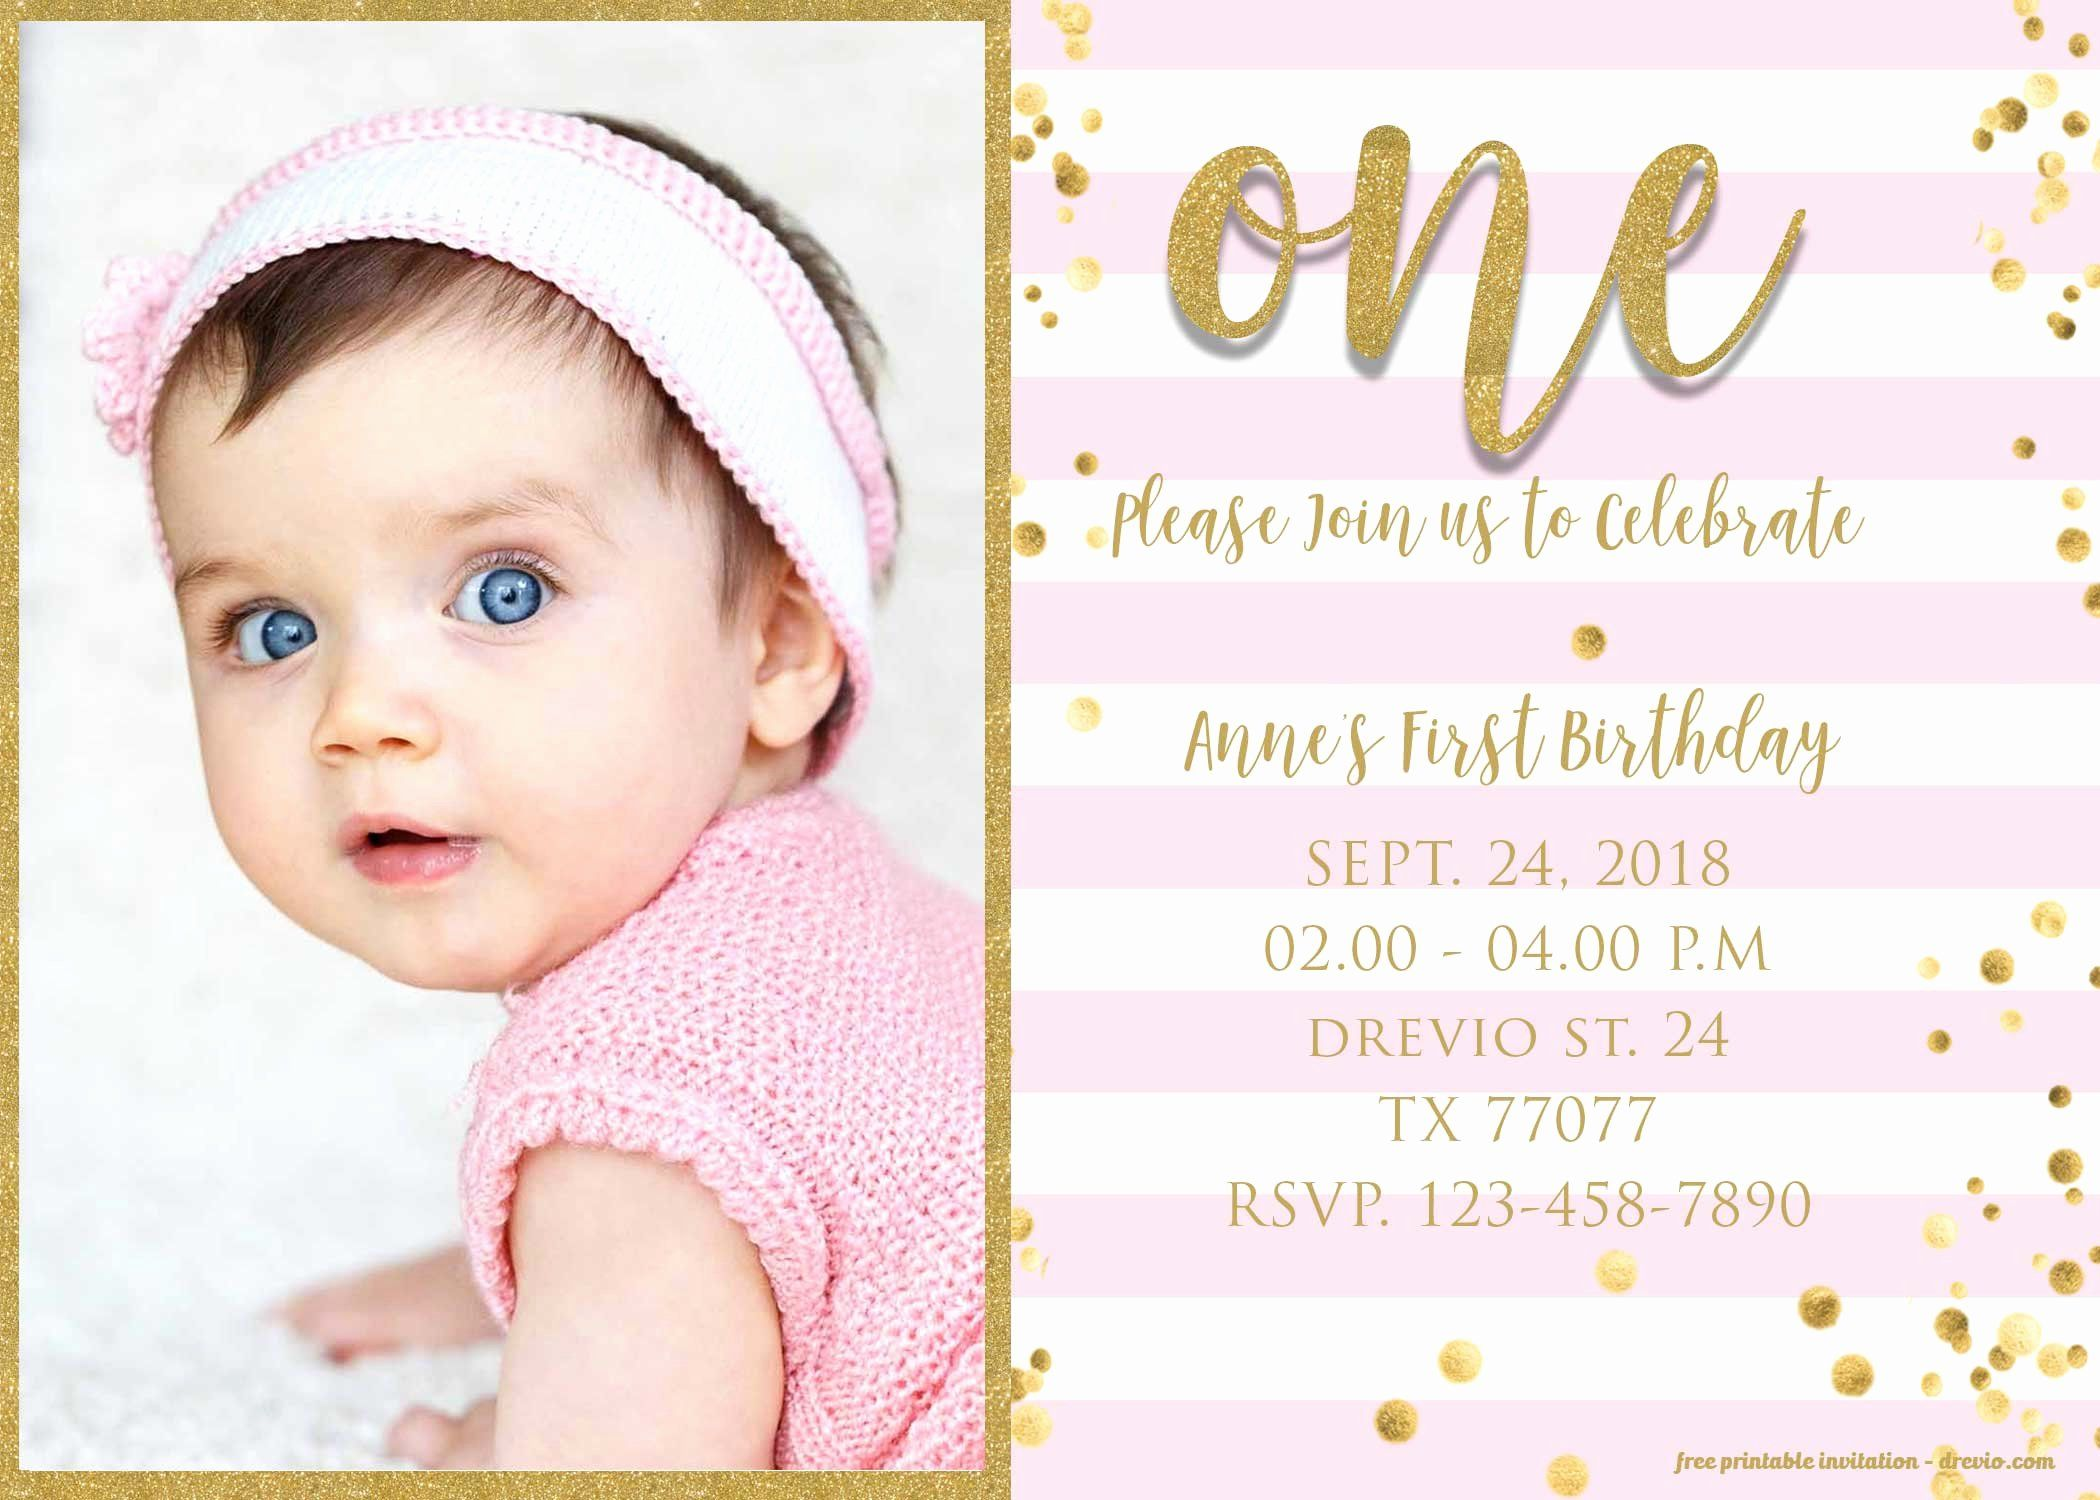 First Birthday Invites Girl Unique Free 1st Birthday Invitations Template For Girl Fr 1st Birthday Invitations 1st Birthday Invitations Girl Pink Invitations